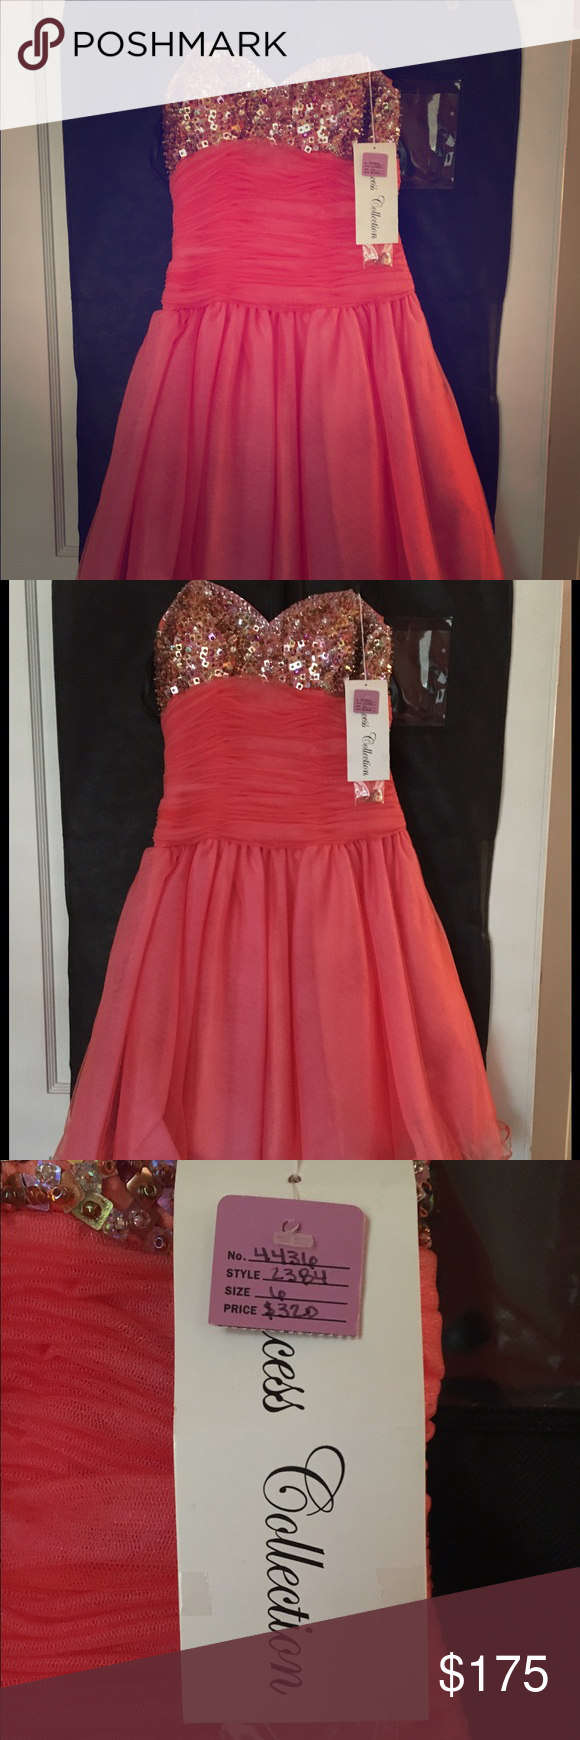 Beaded coral prom dress size